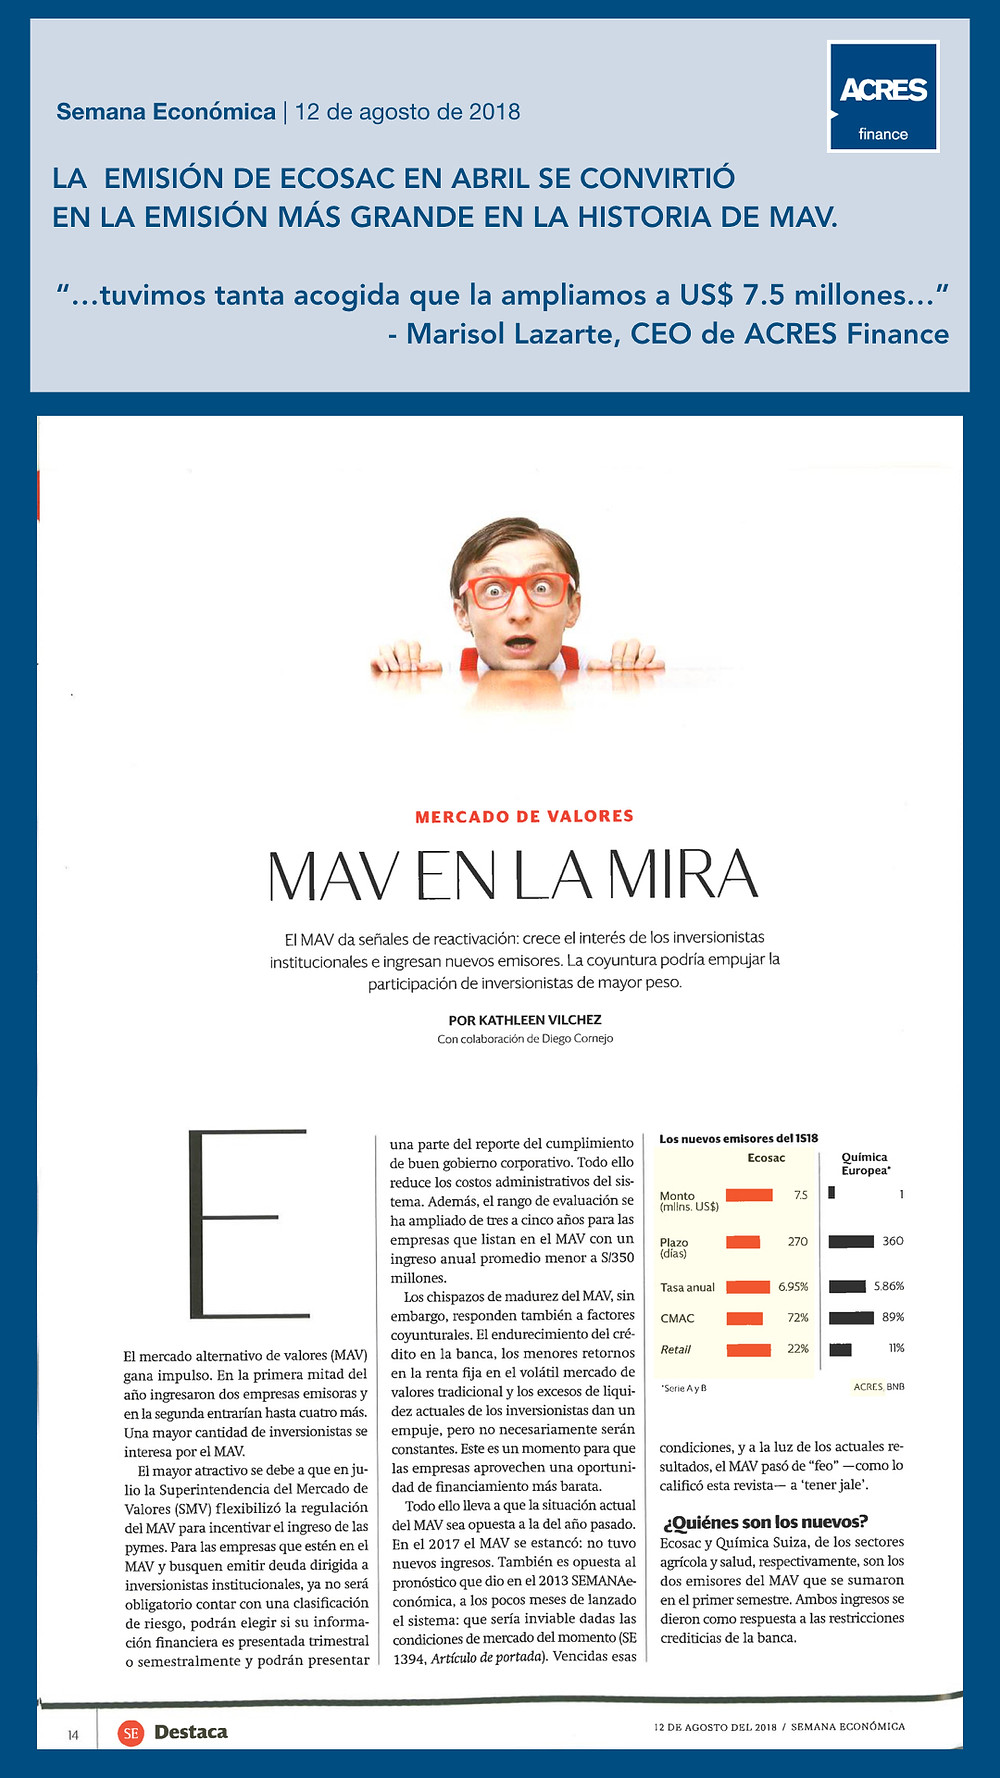 Semana Económica | ACRES Finance | MAV